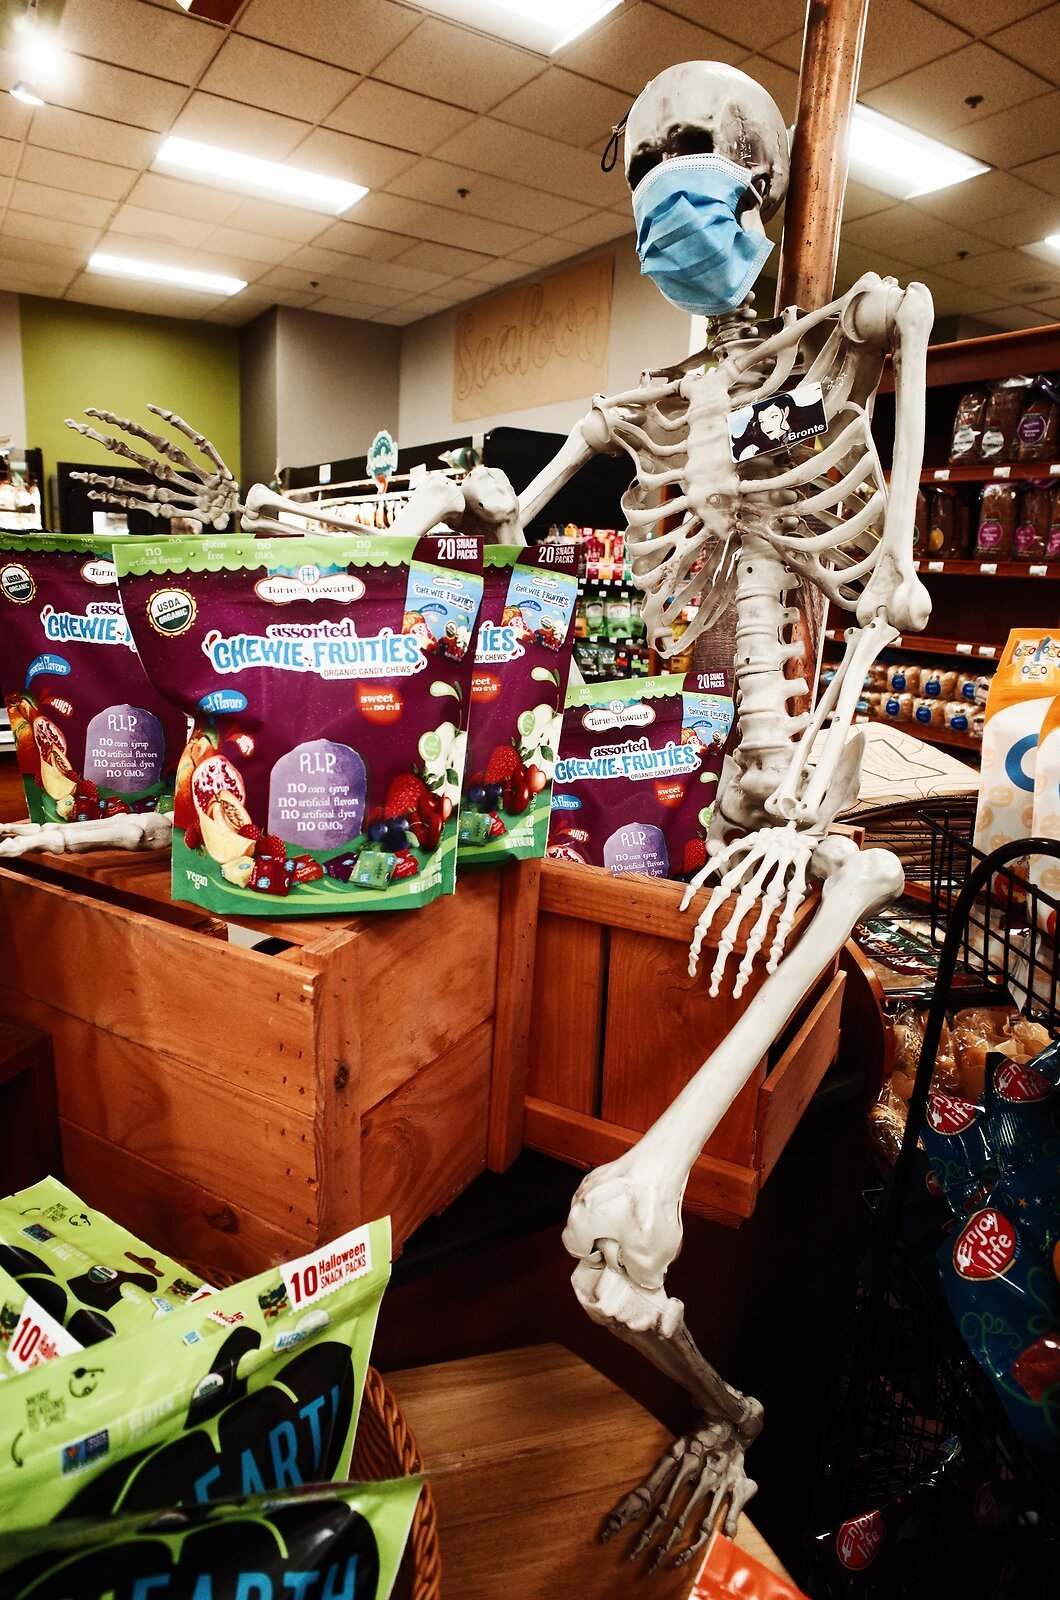 GRII_Sept24_Supermarket_skeleton_Chewie_fruities.jpg